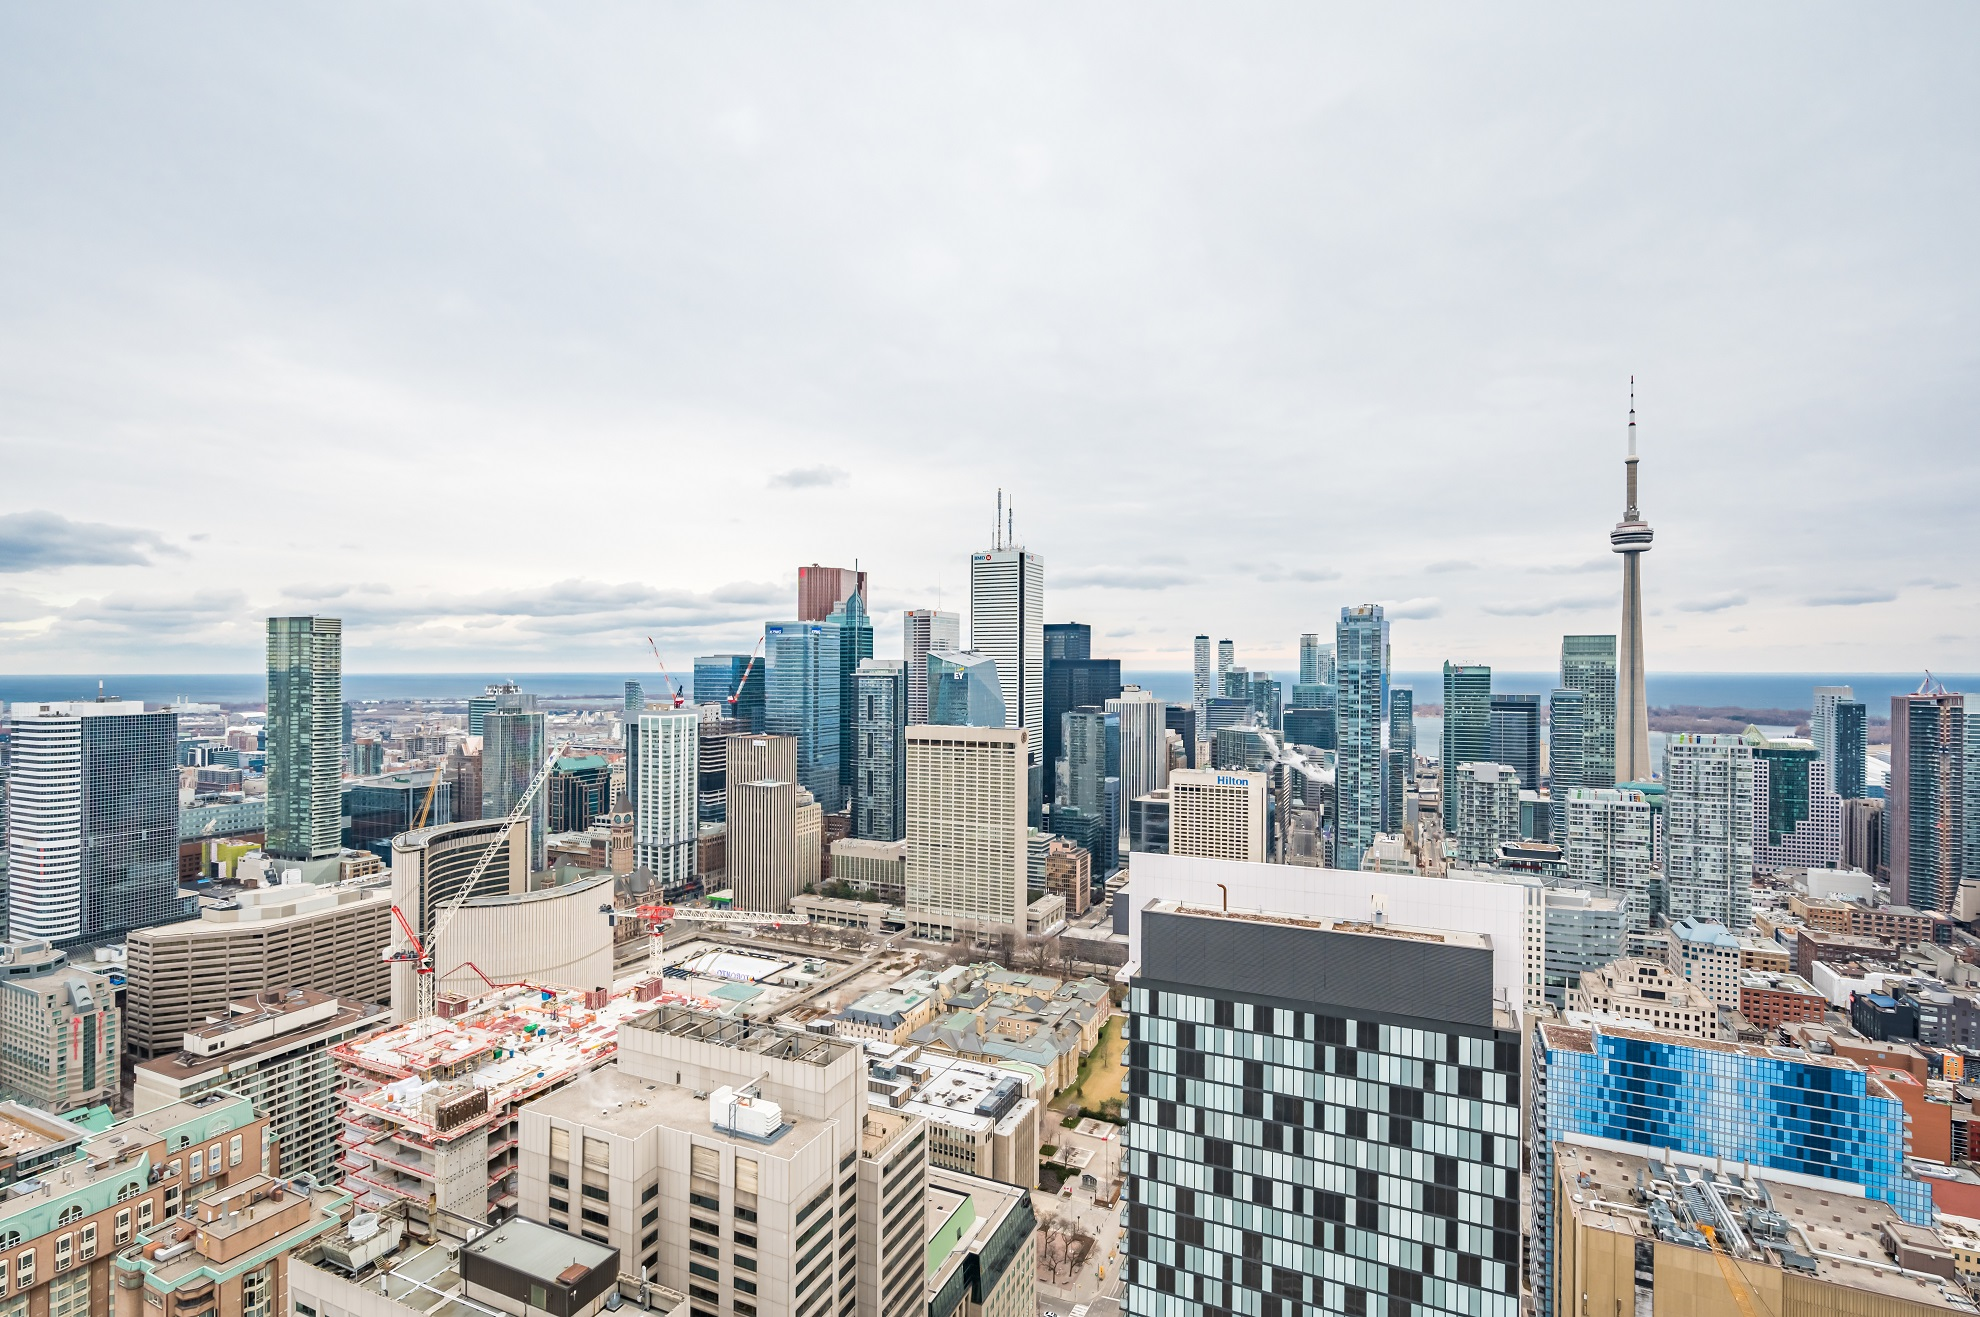 Toronto skyline with CN Tower view to show February 2021 housing market.